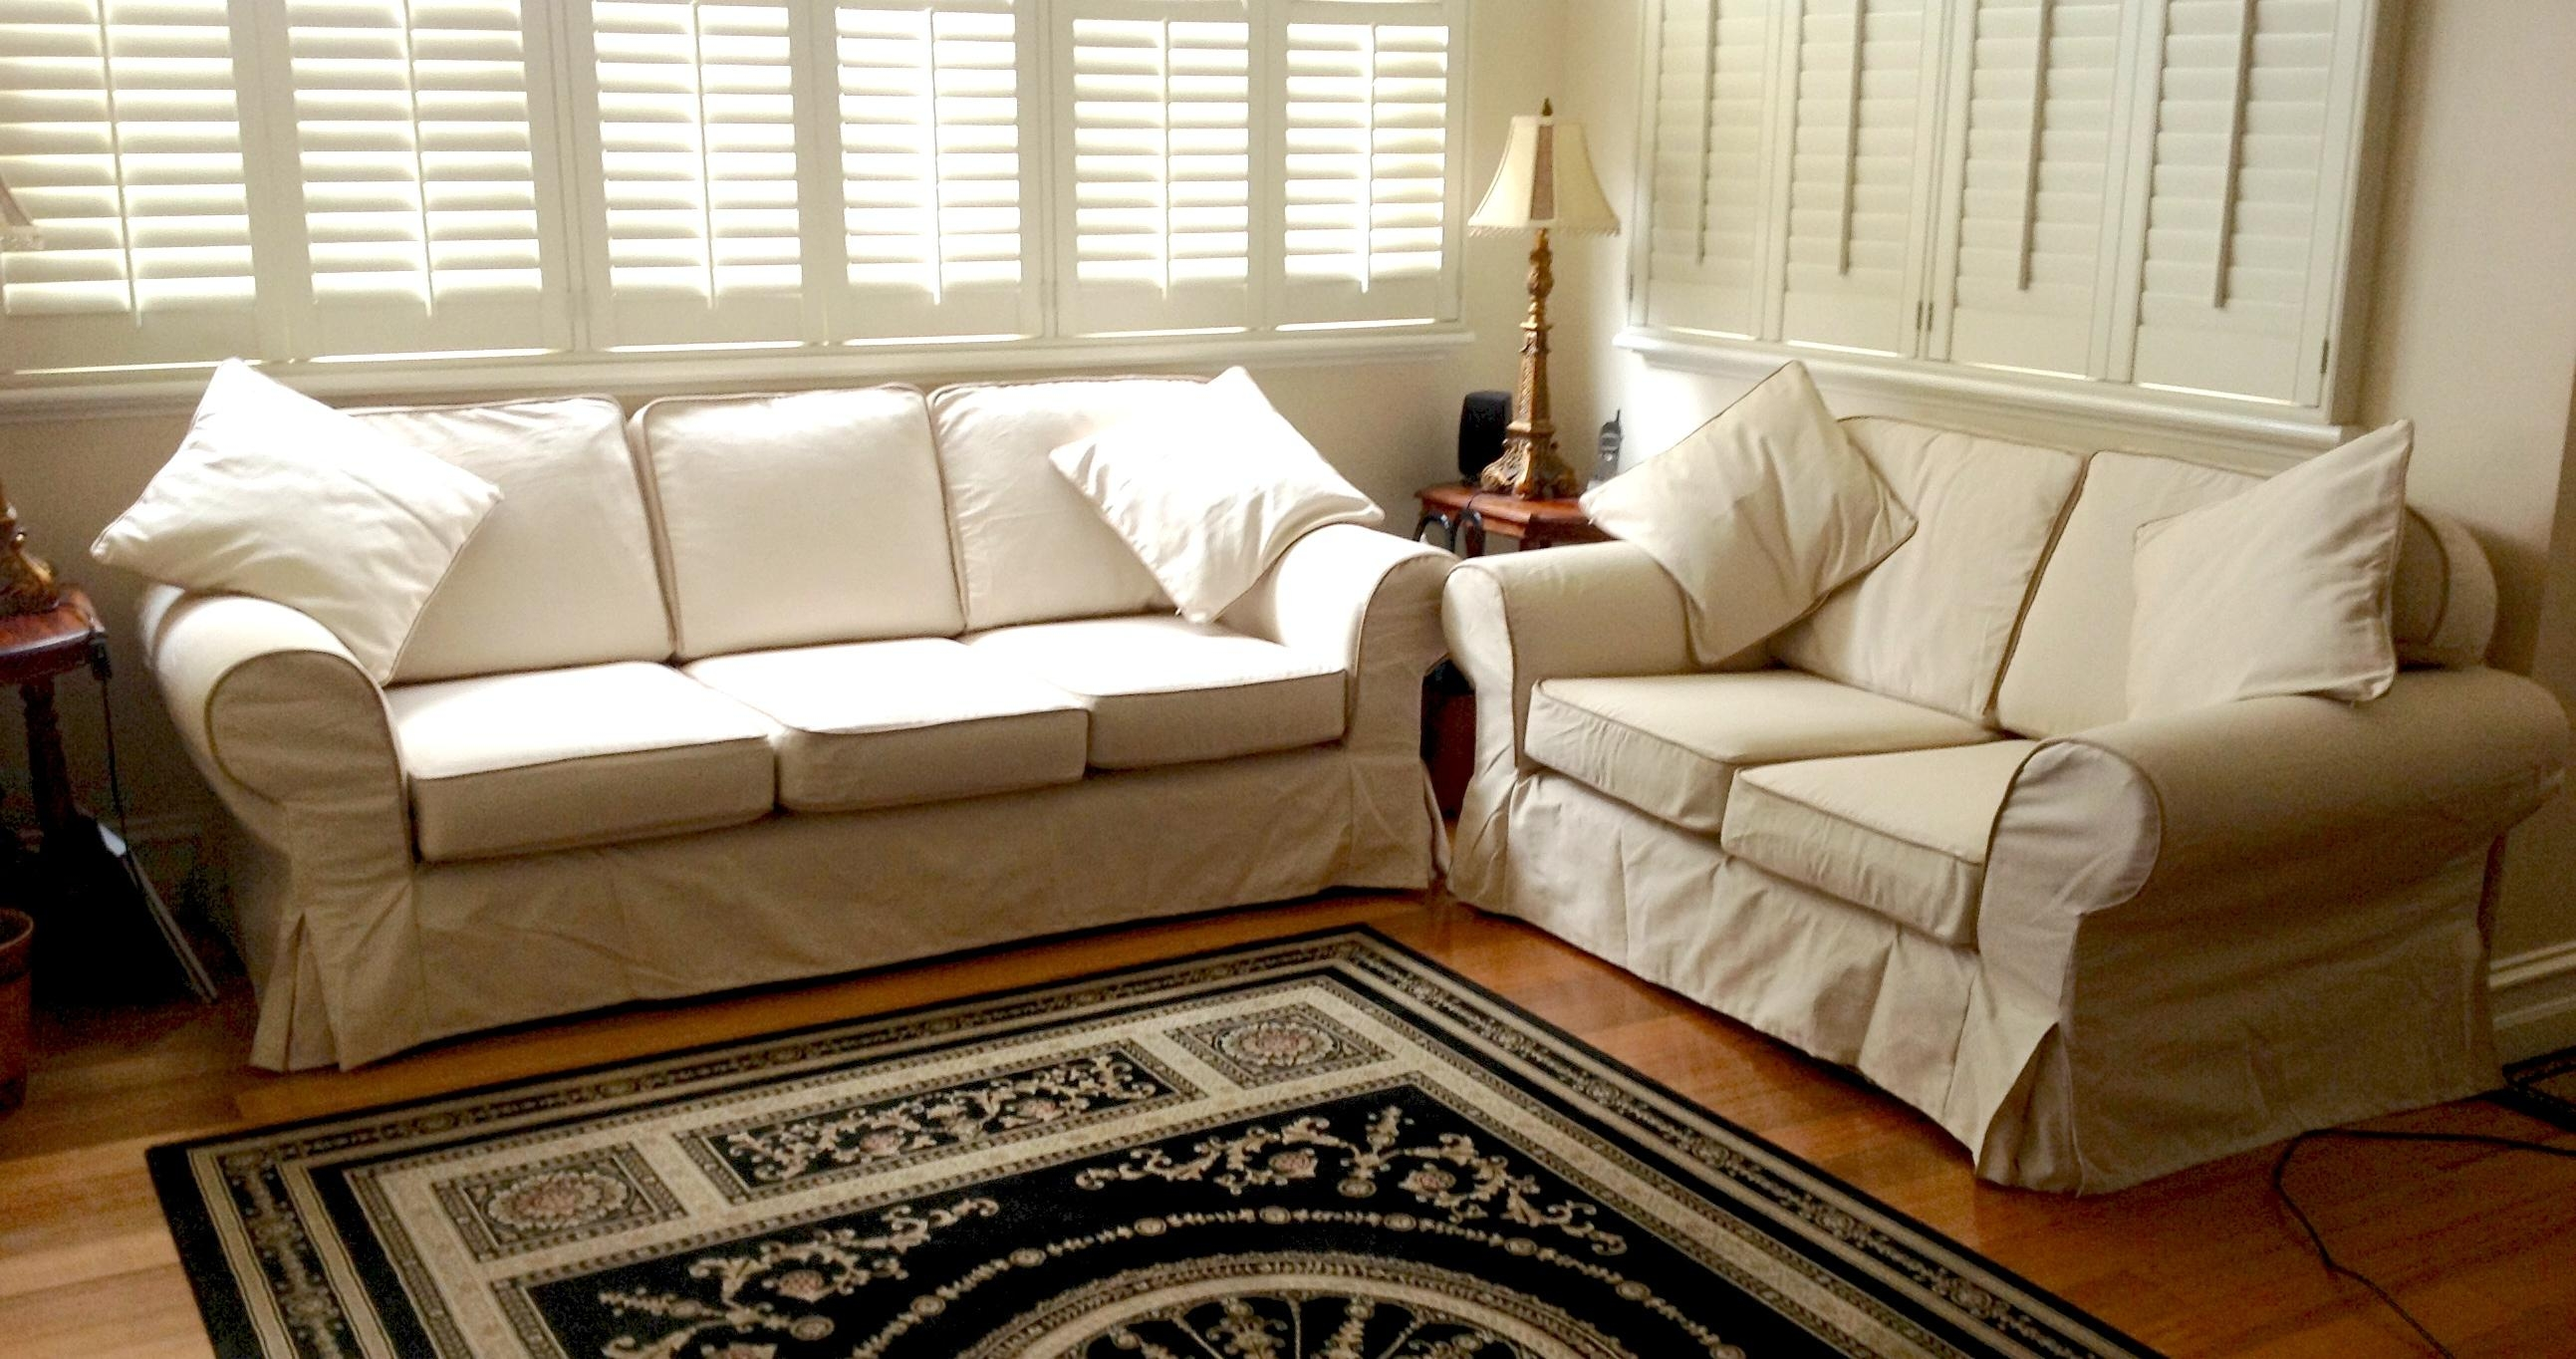 Custom Slipcovers And Couch Cover For Any Sofa Online Pertaining To Covers For Sofas And Chairs (View 20 of 20)